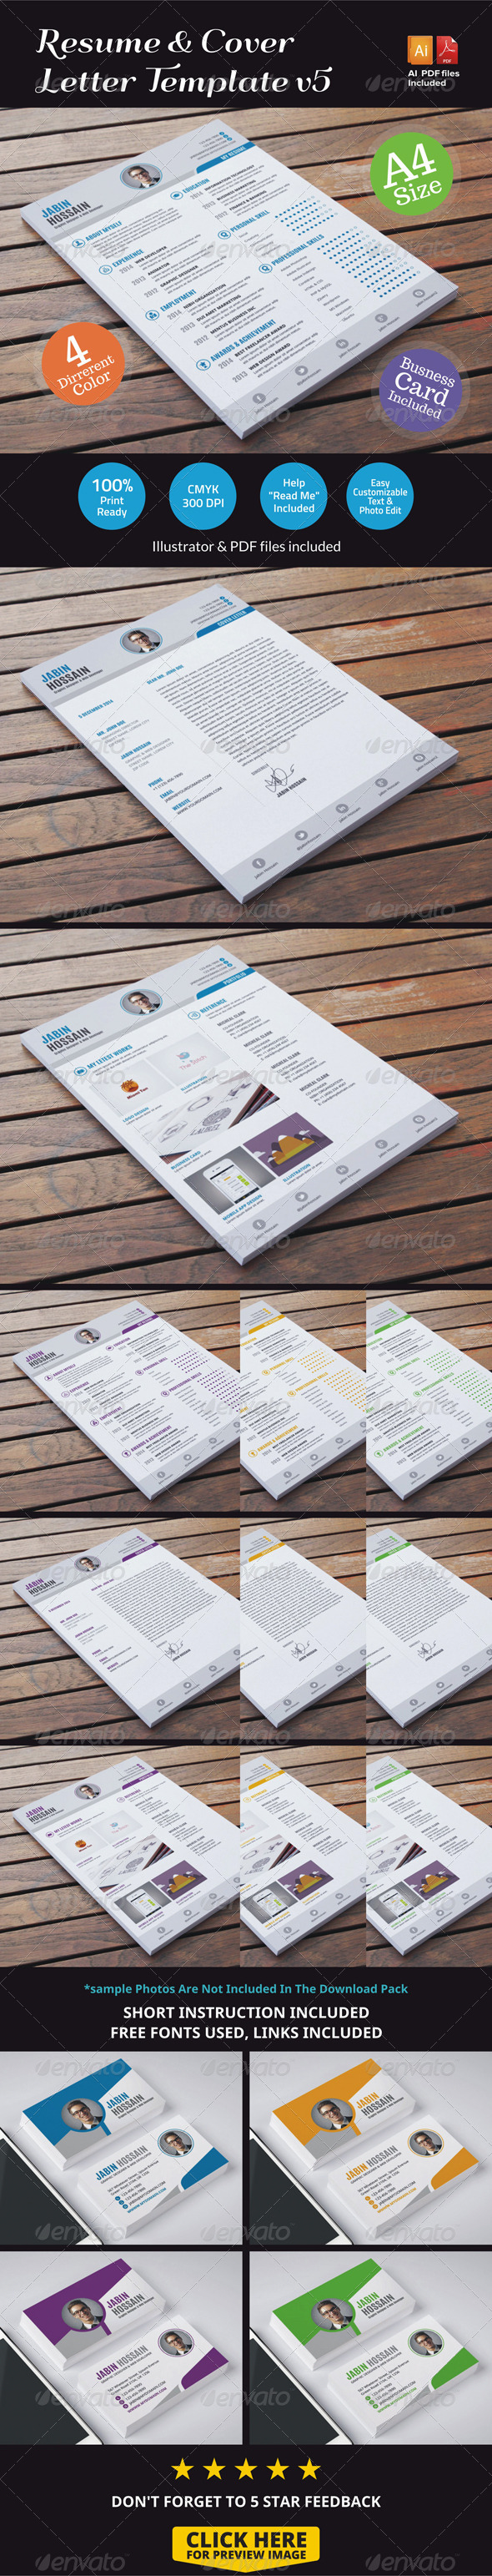 Resume & Cover Letter Template v5 - Resumes Stationery